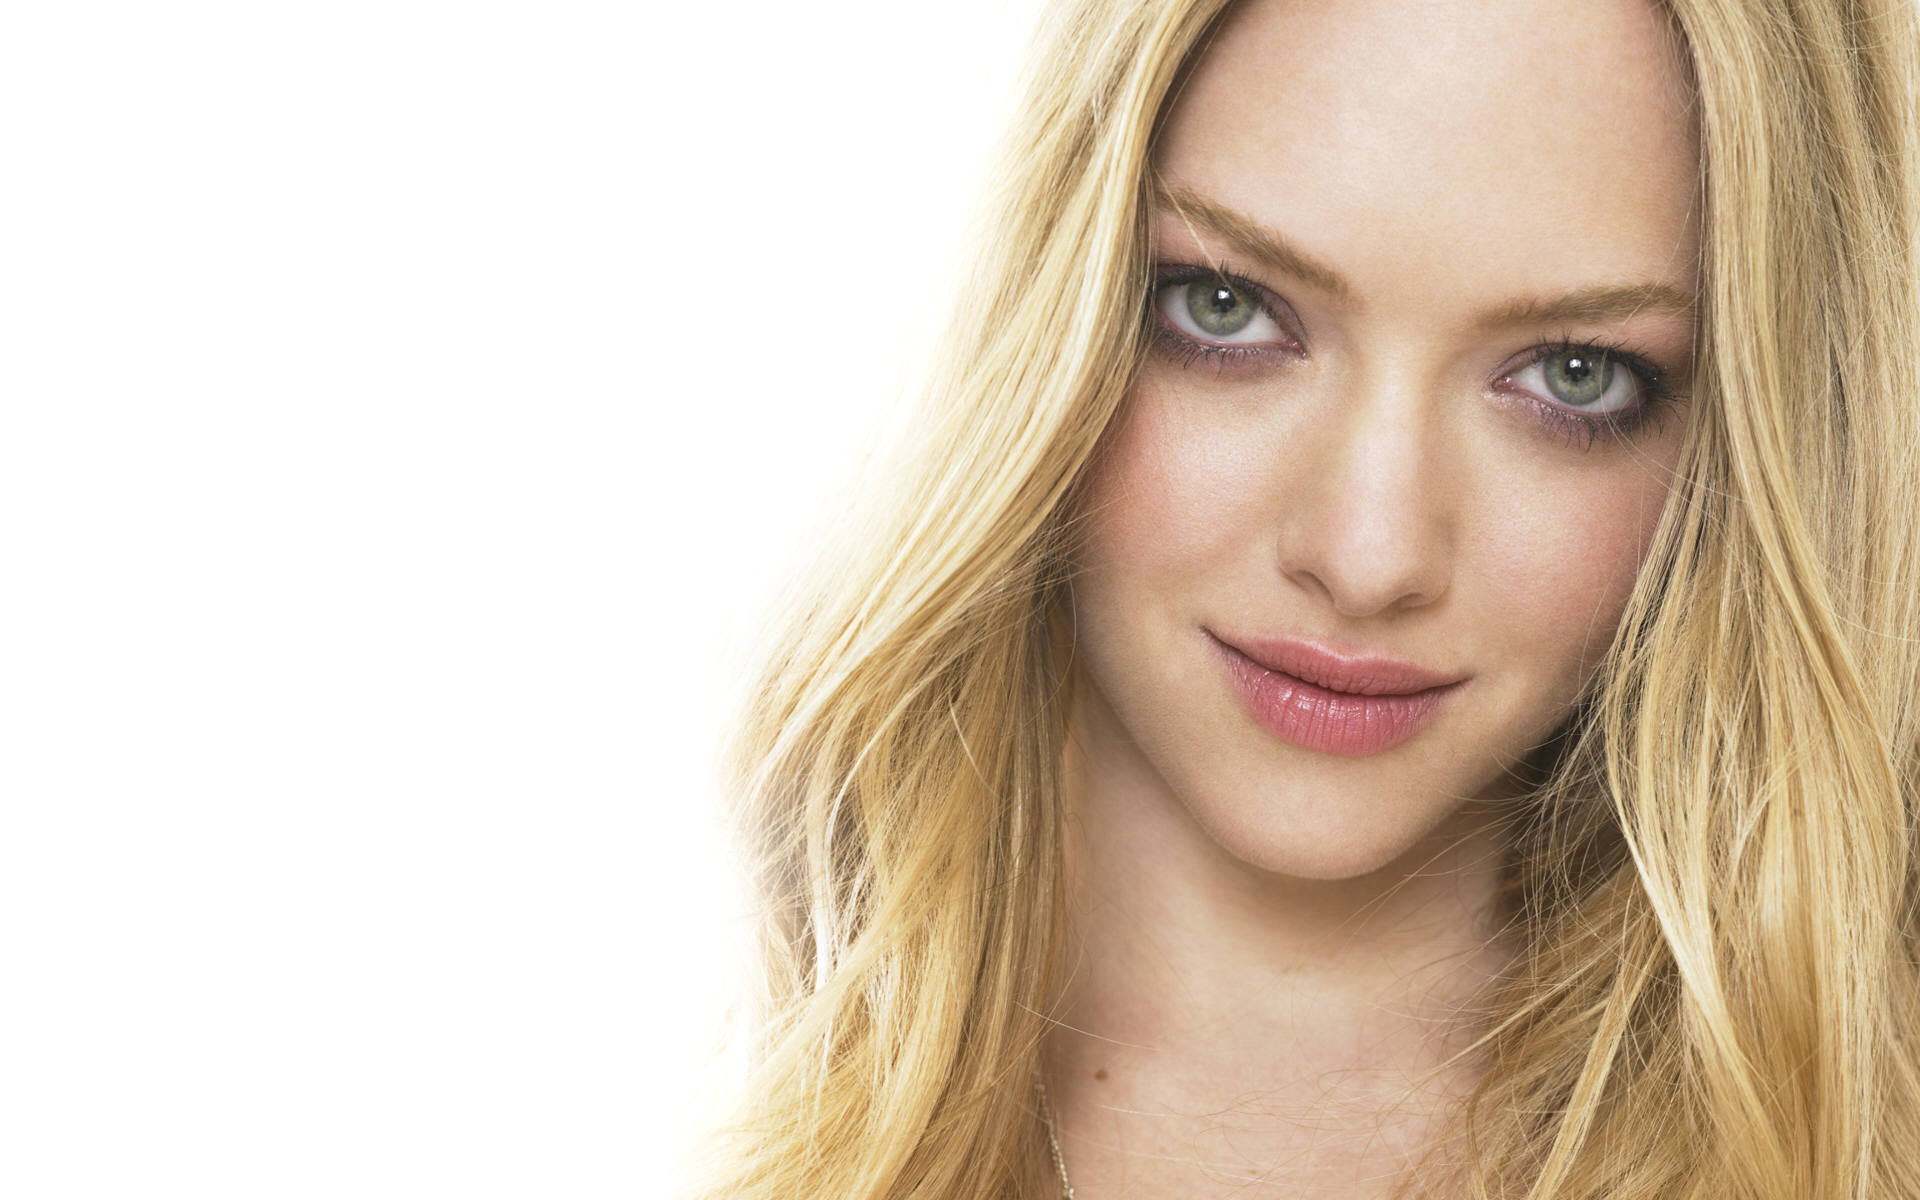 Download Hollywood Girl Wallpaper 45   Wallpaper For your 1920x1200